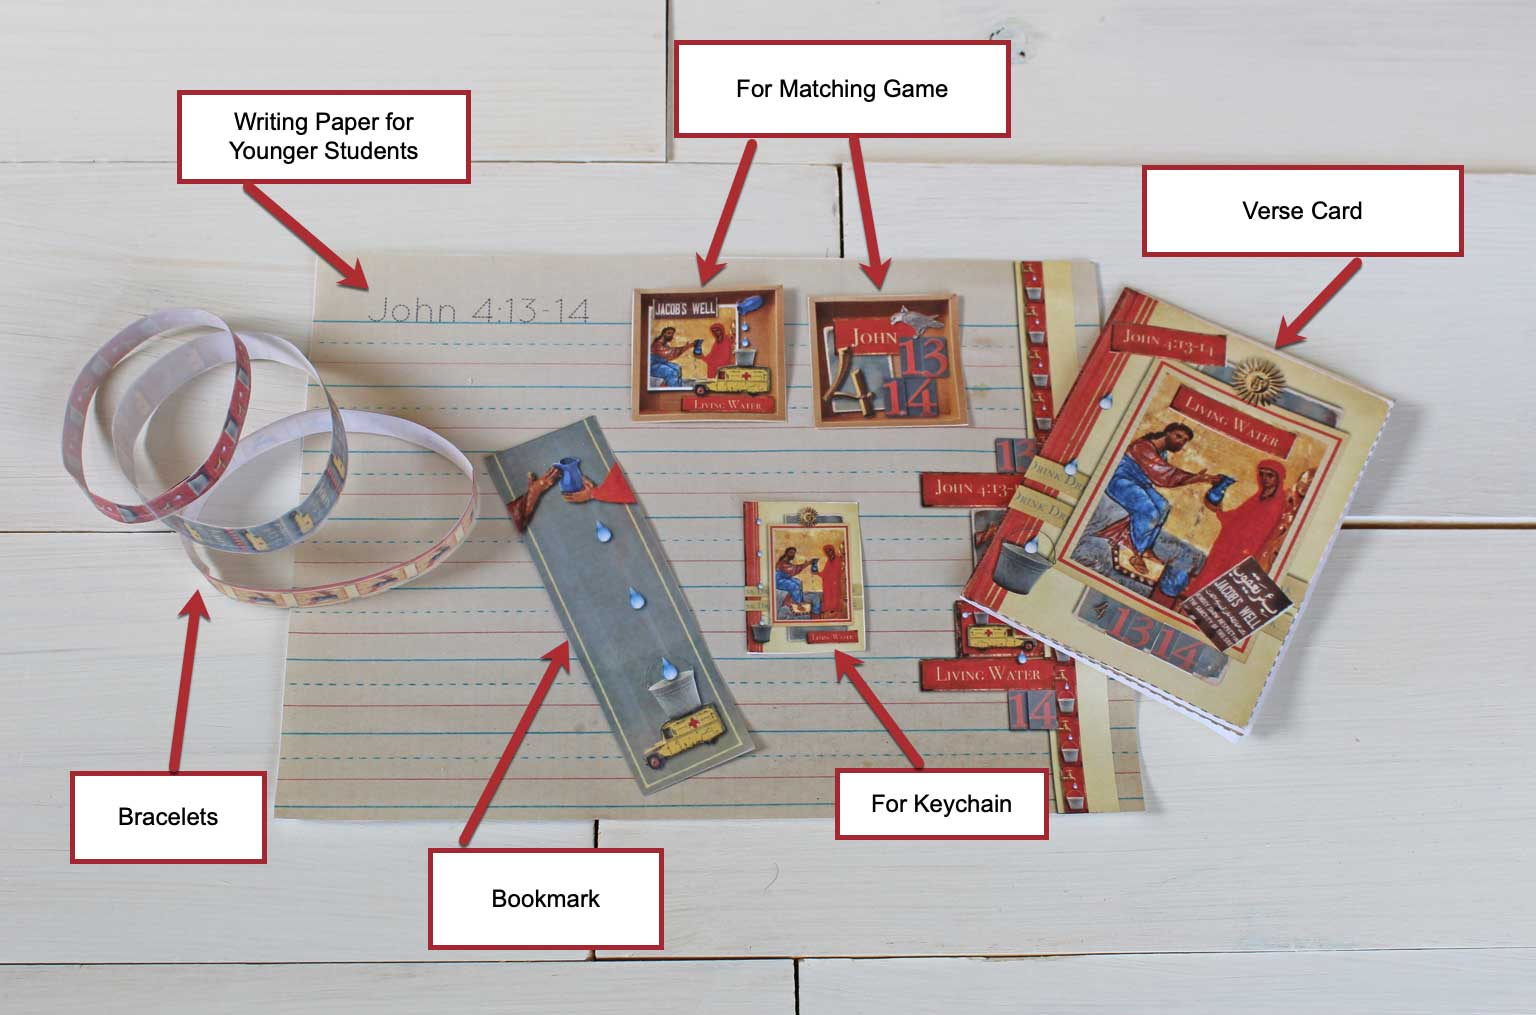 Image showing all the Bible verse projects